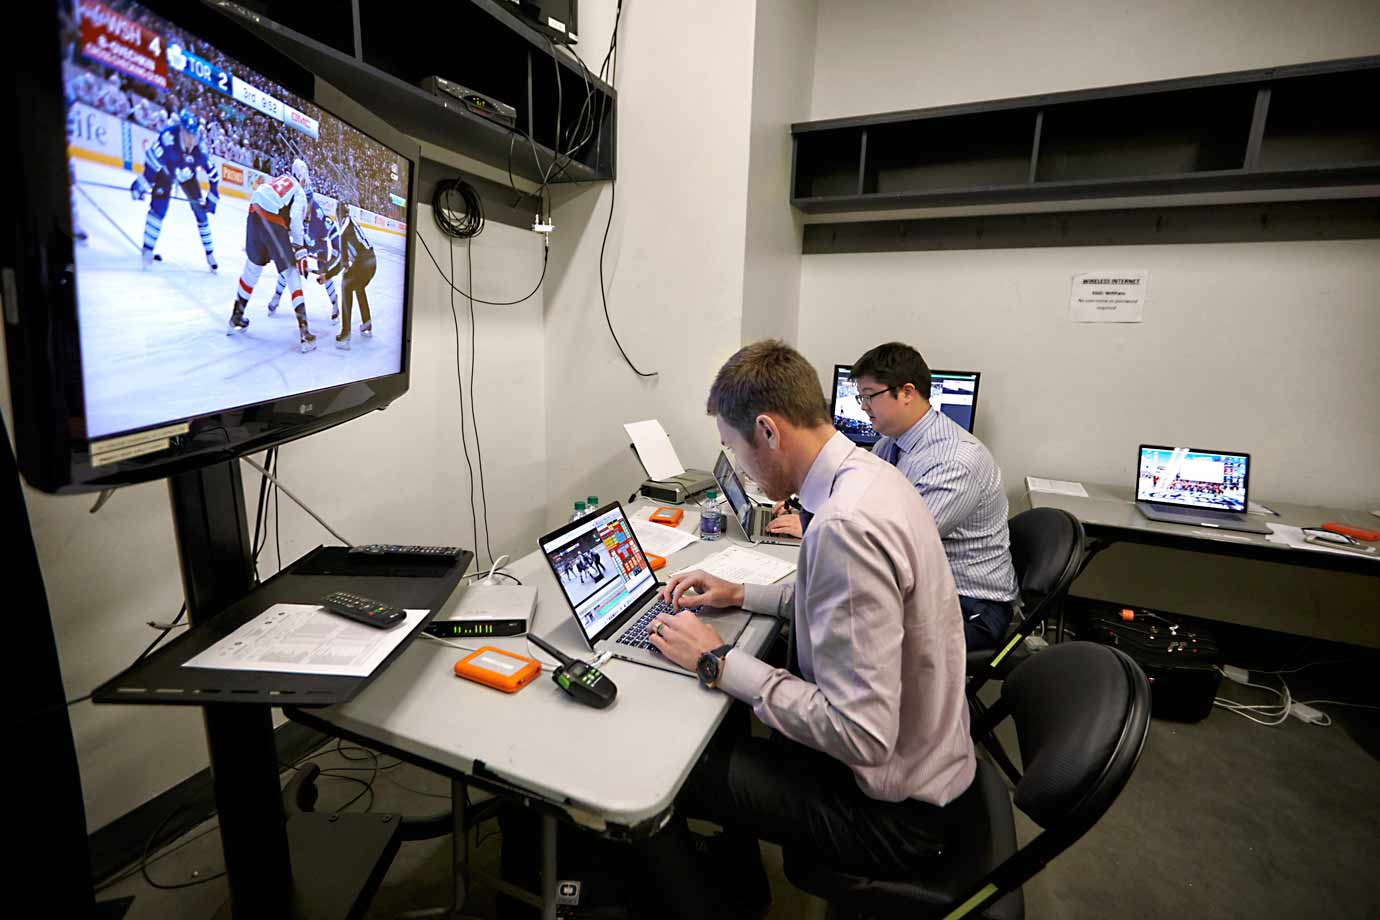 At 9:27 p.m., while the Caps do battle on the ice, members of their coaching staff analyze the action in real time.